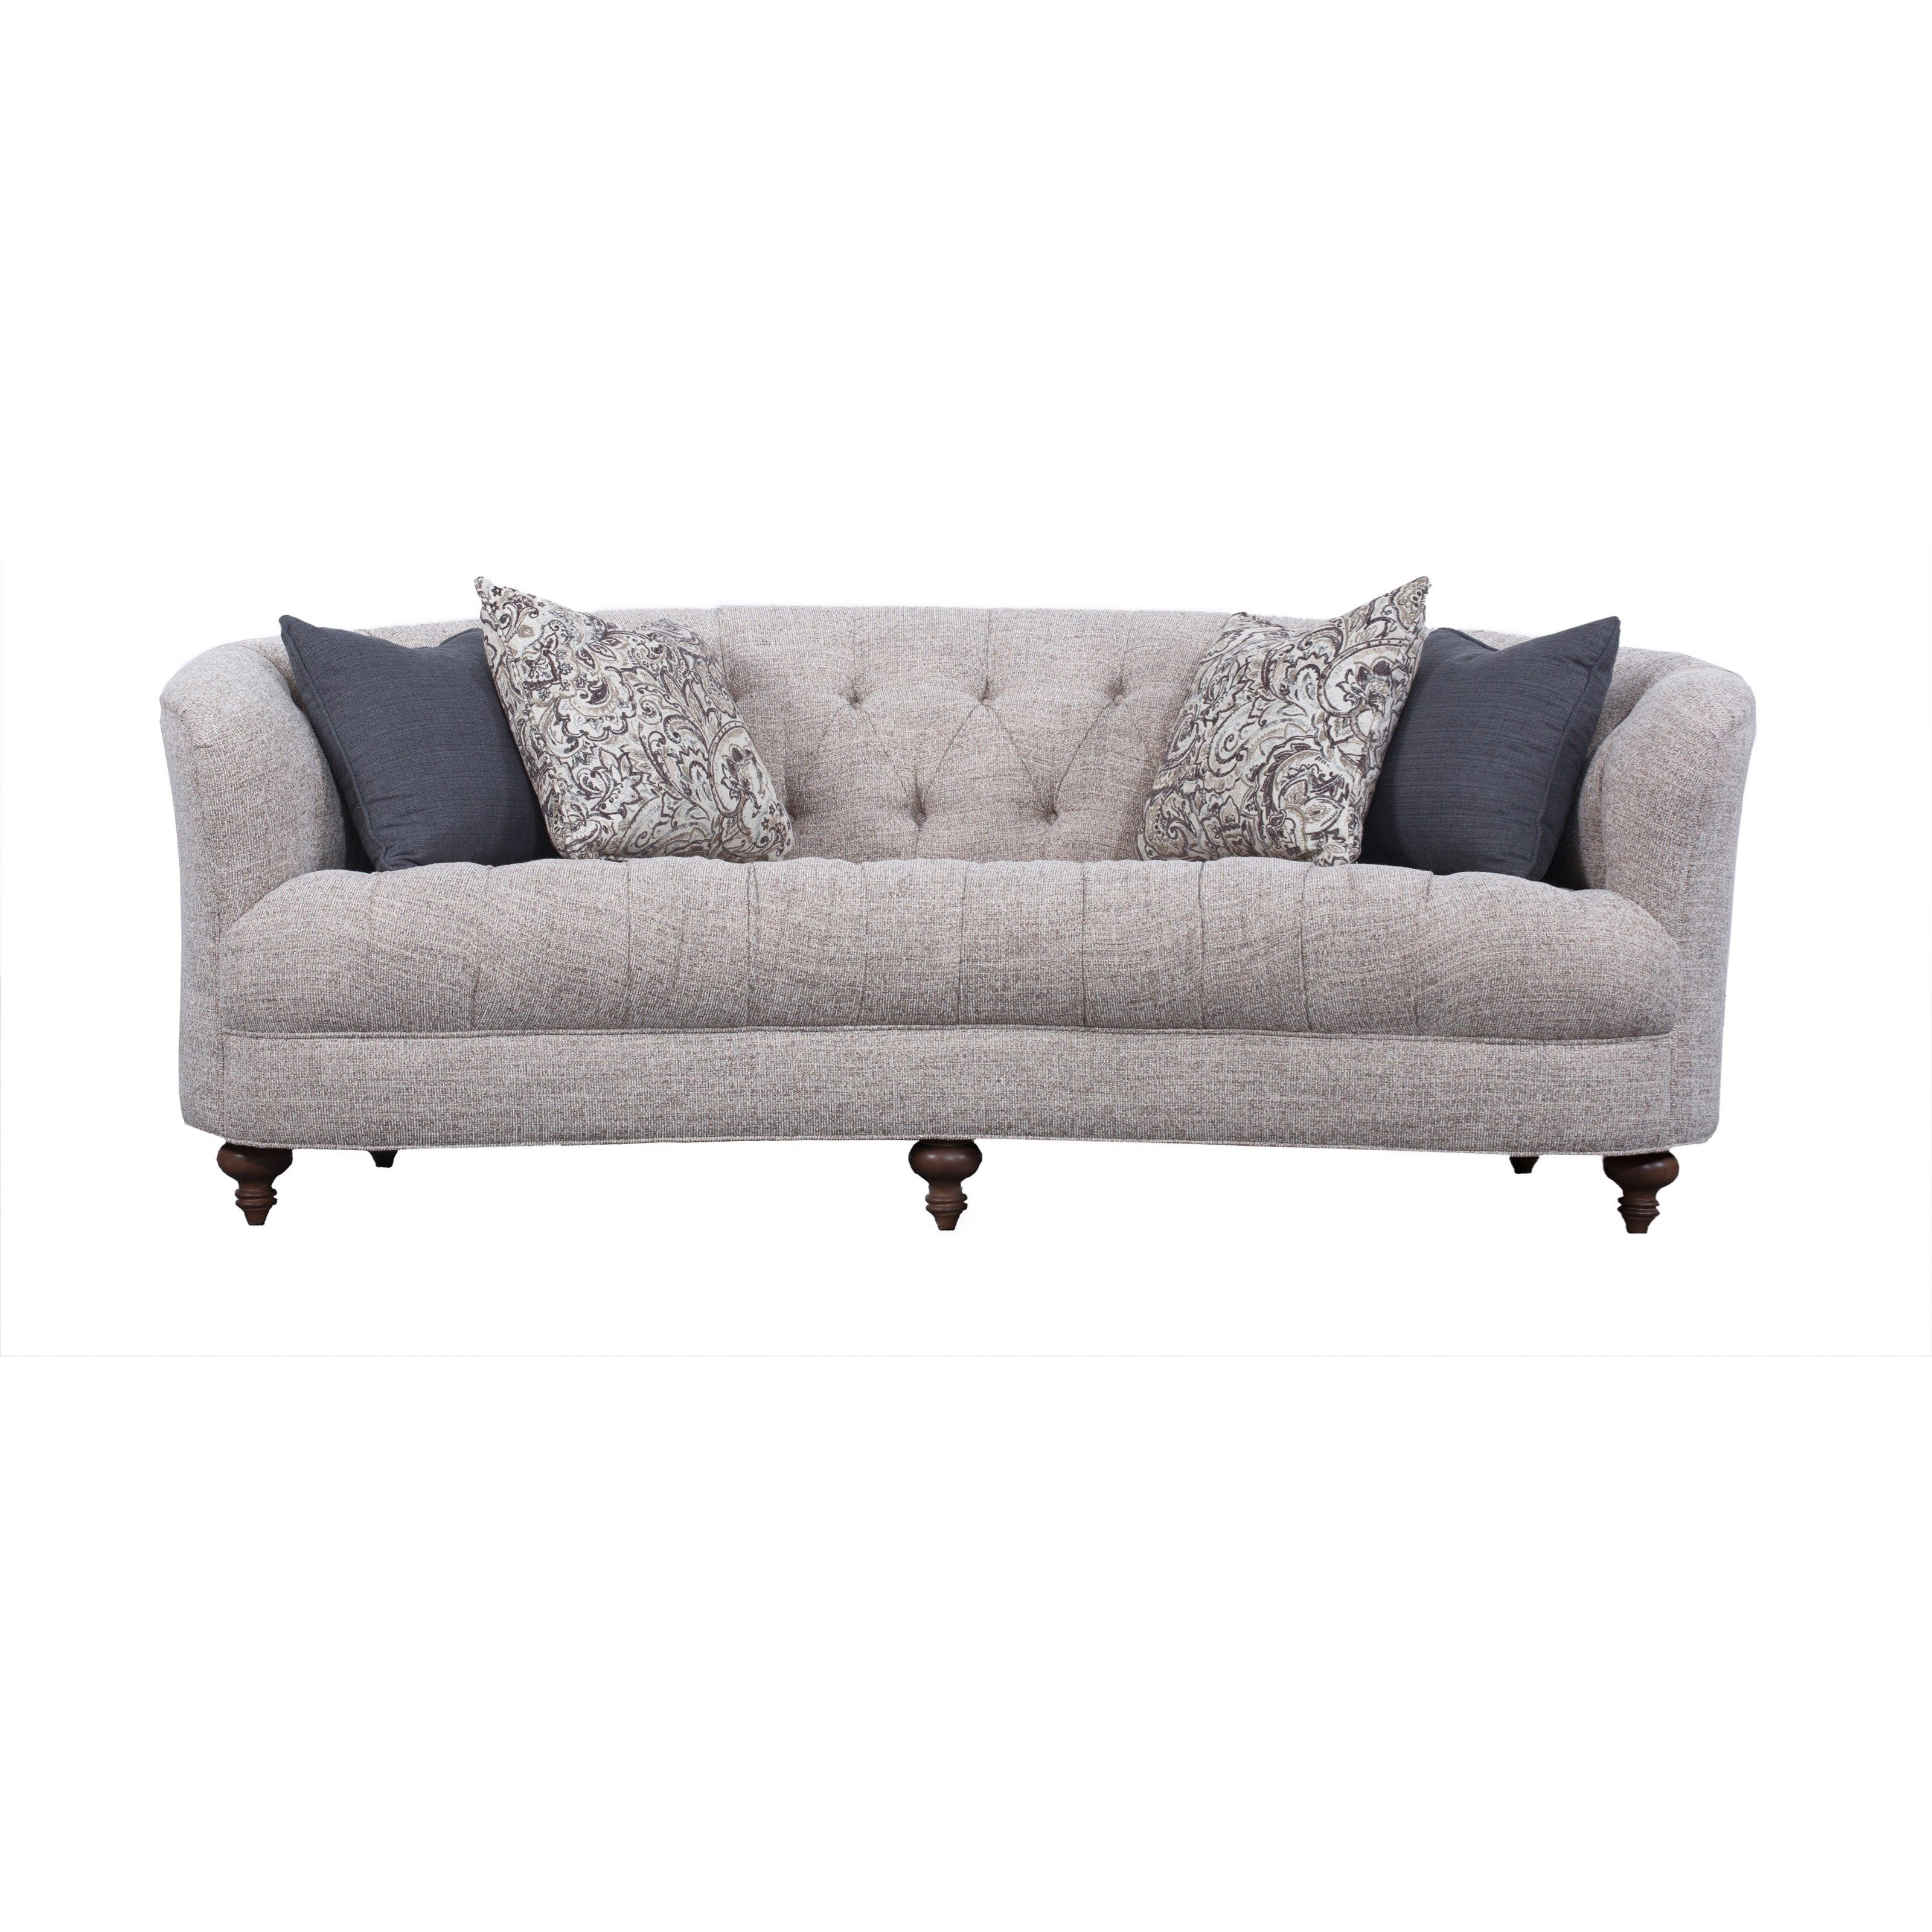 desseray sofa by magnussen home at gill brothers furniture ideas